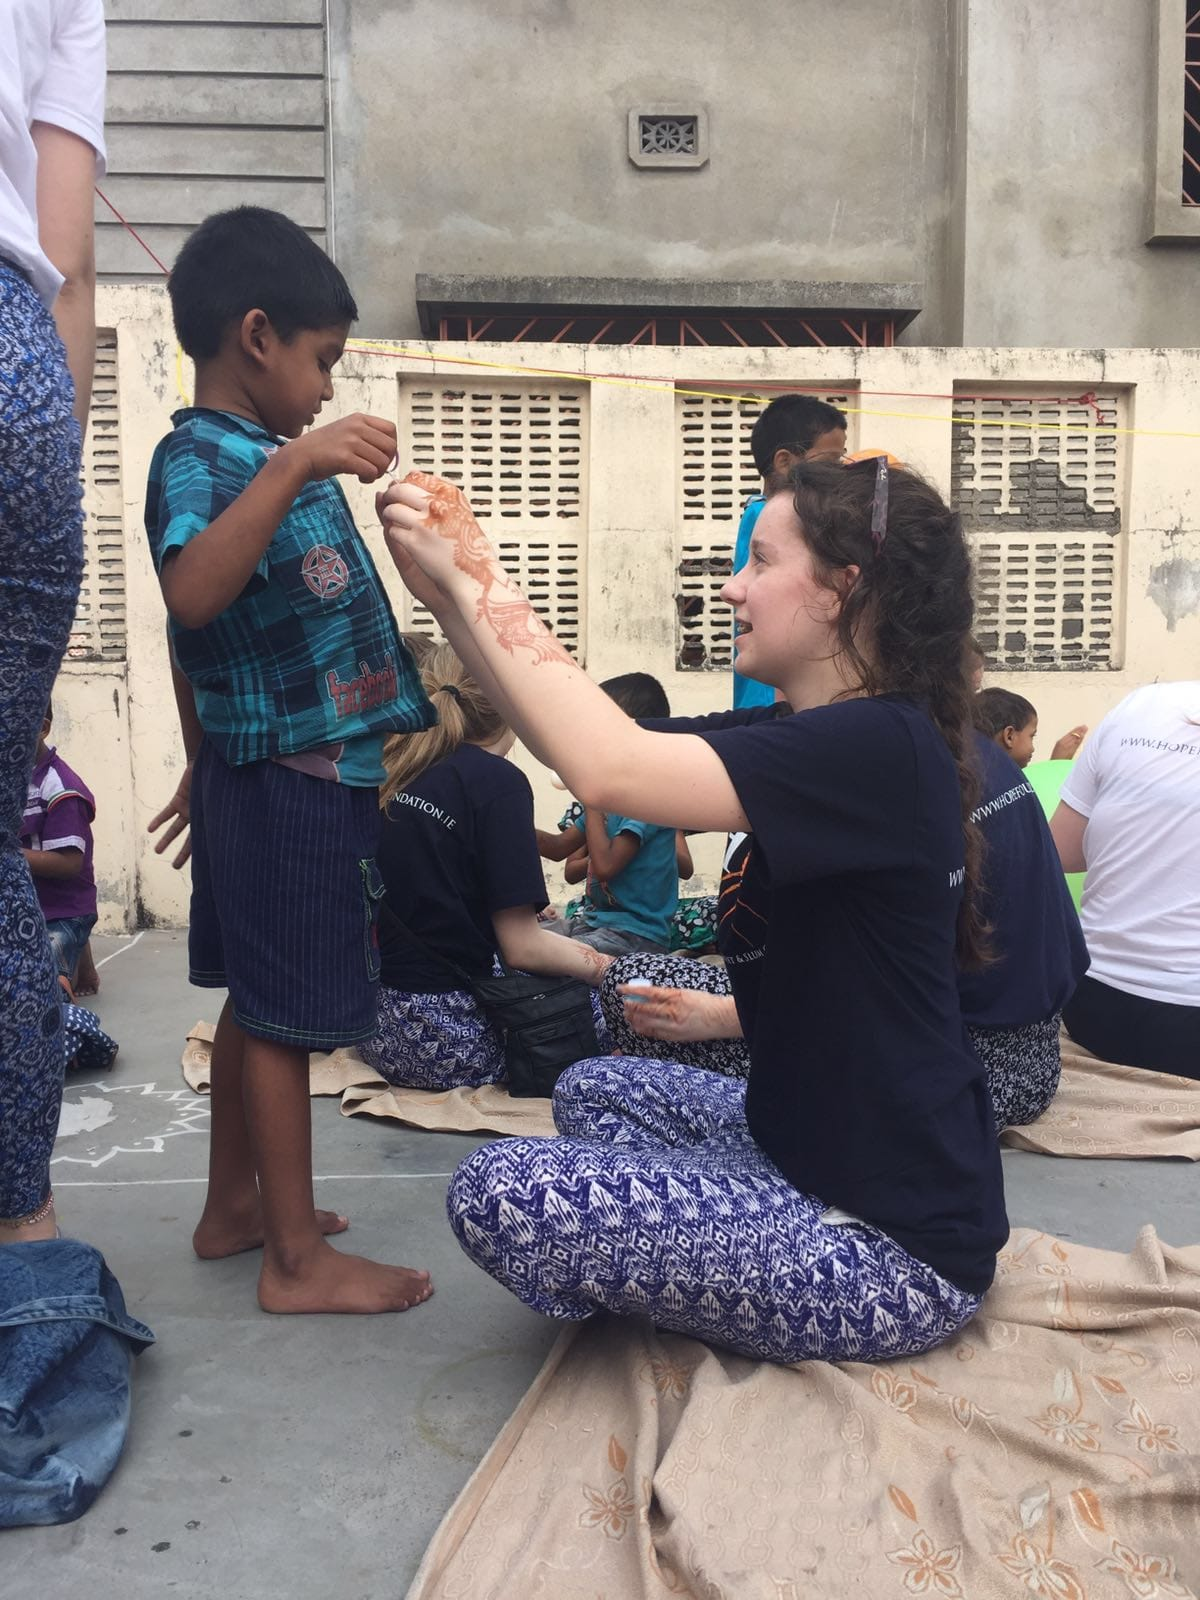 April 2016: Kolkata gave the Desmond College Students a chance to see why the HOPE foundation need the raised money